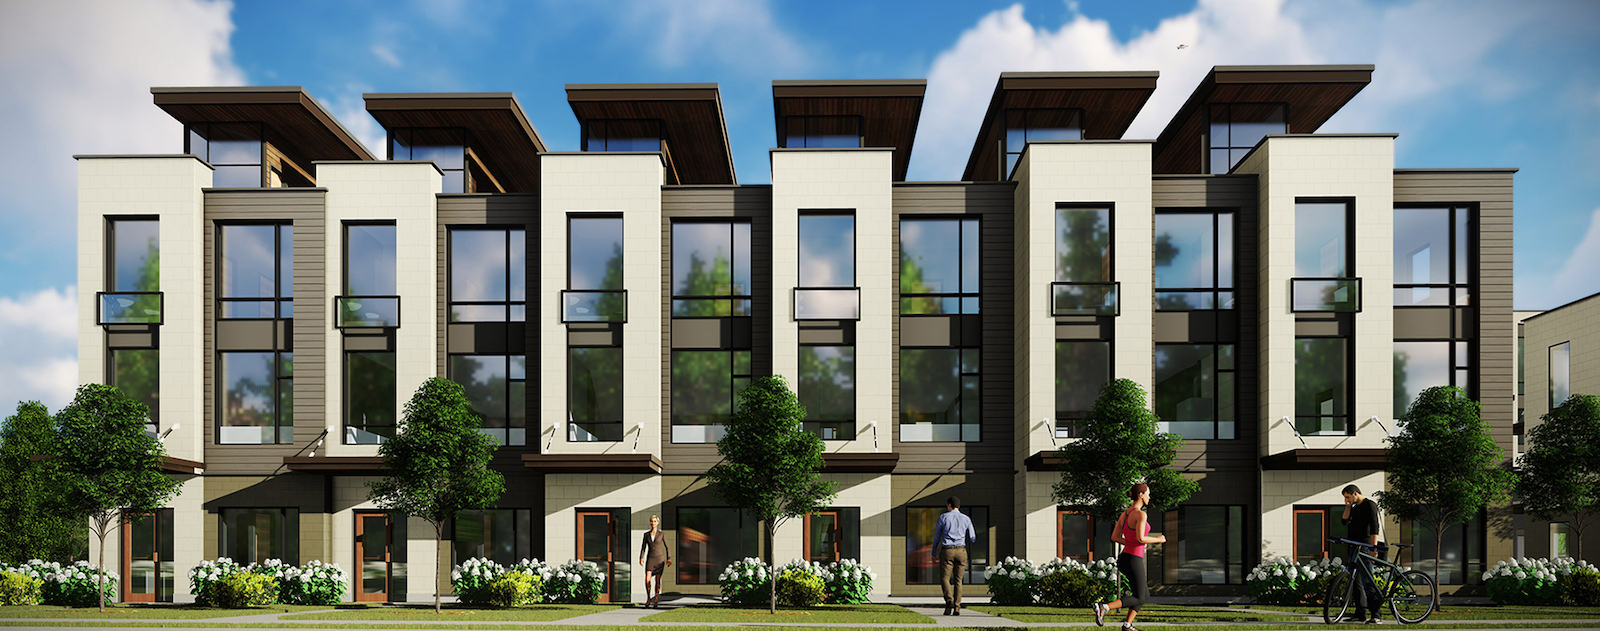 Exterior Rendering of Tuxedo Park Boutique Towns